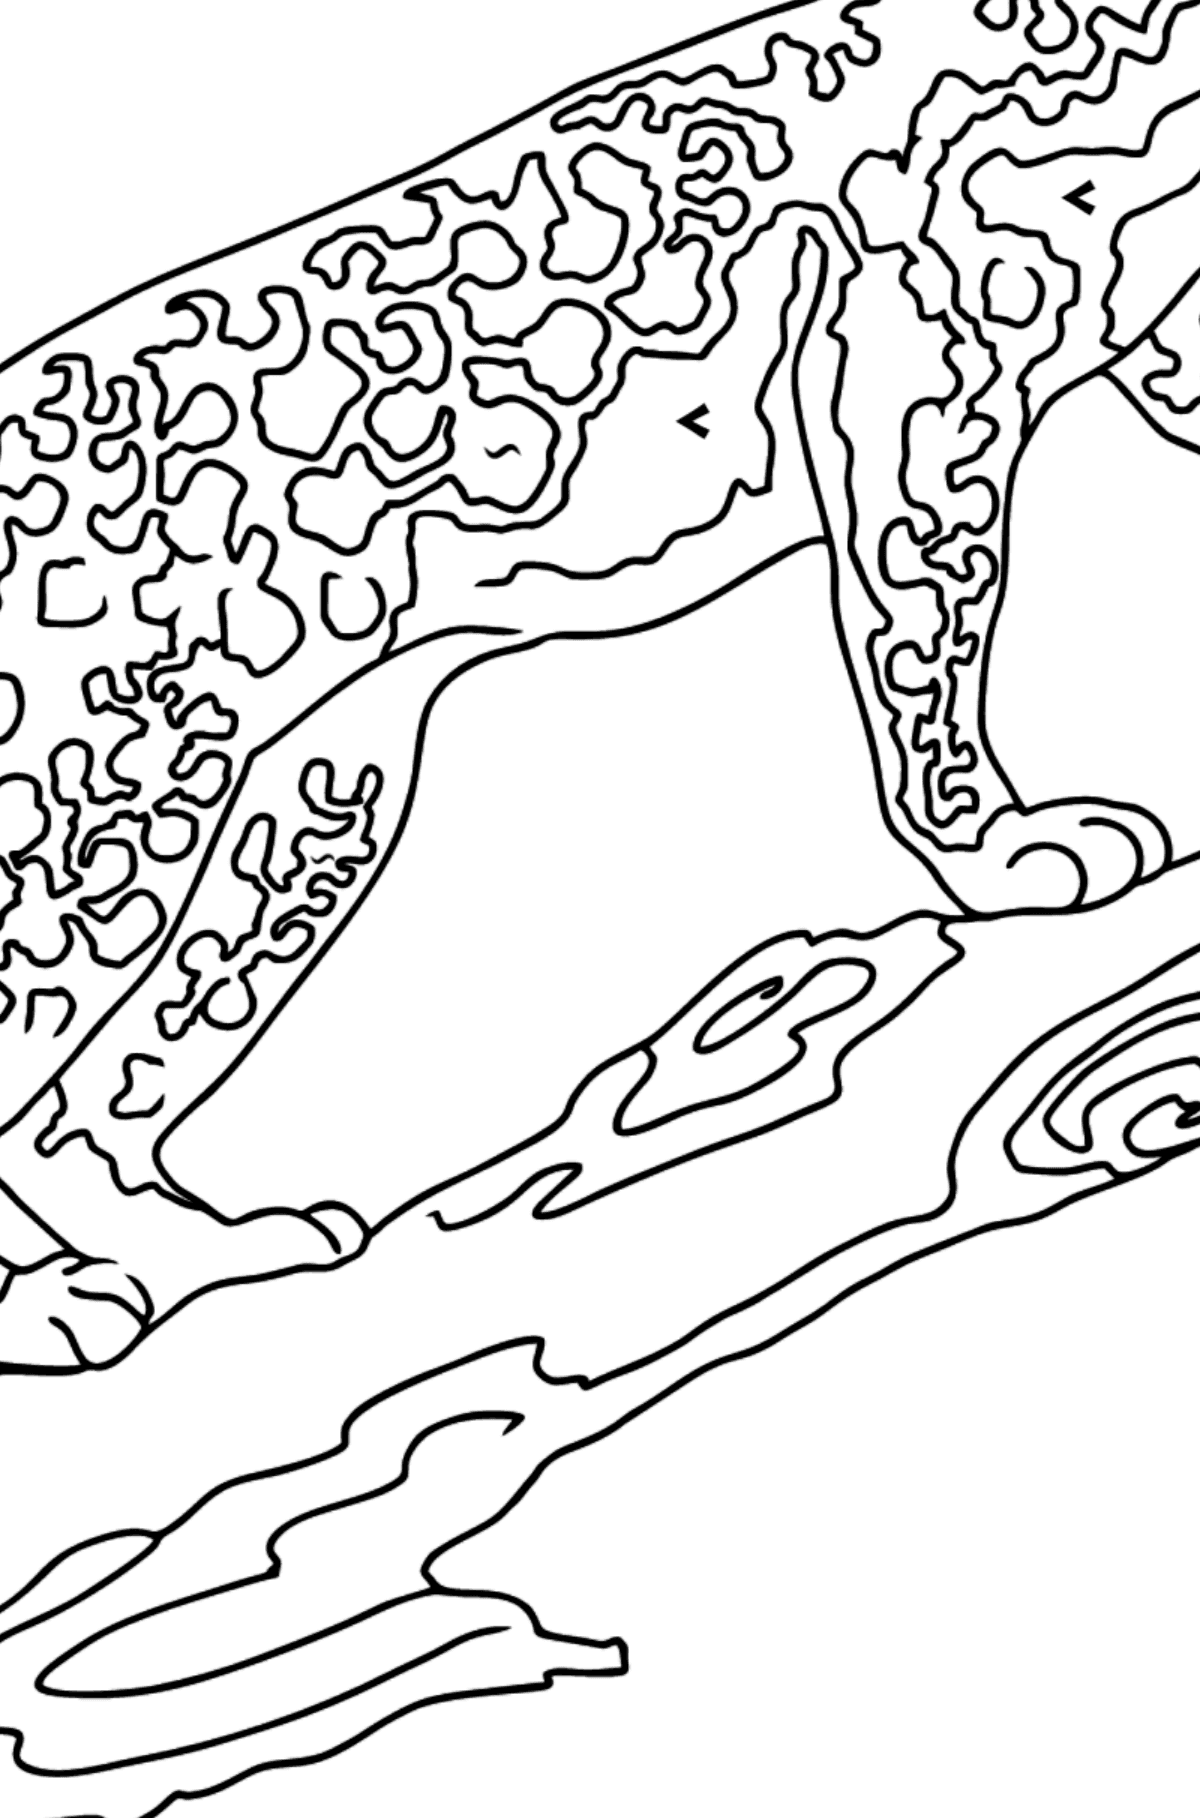 Coloring Page - A Leopard is Getting Ready for a Jump - Coloring by Symbols and Geometric Shapes for Kids